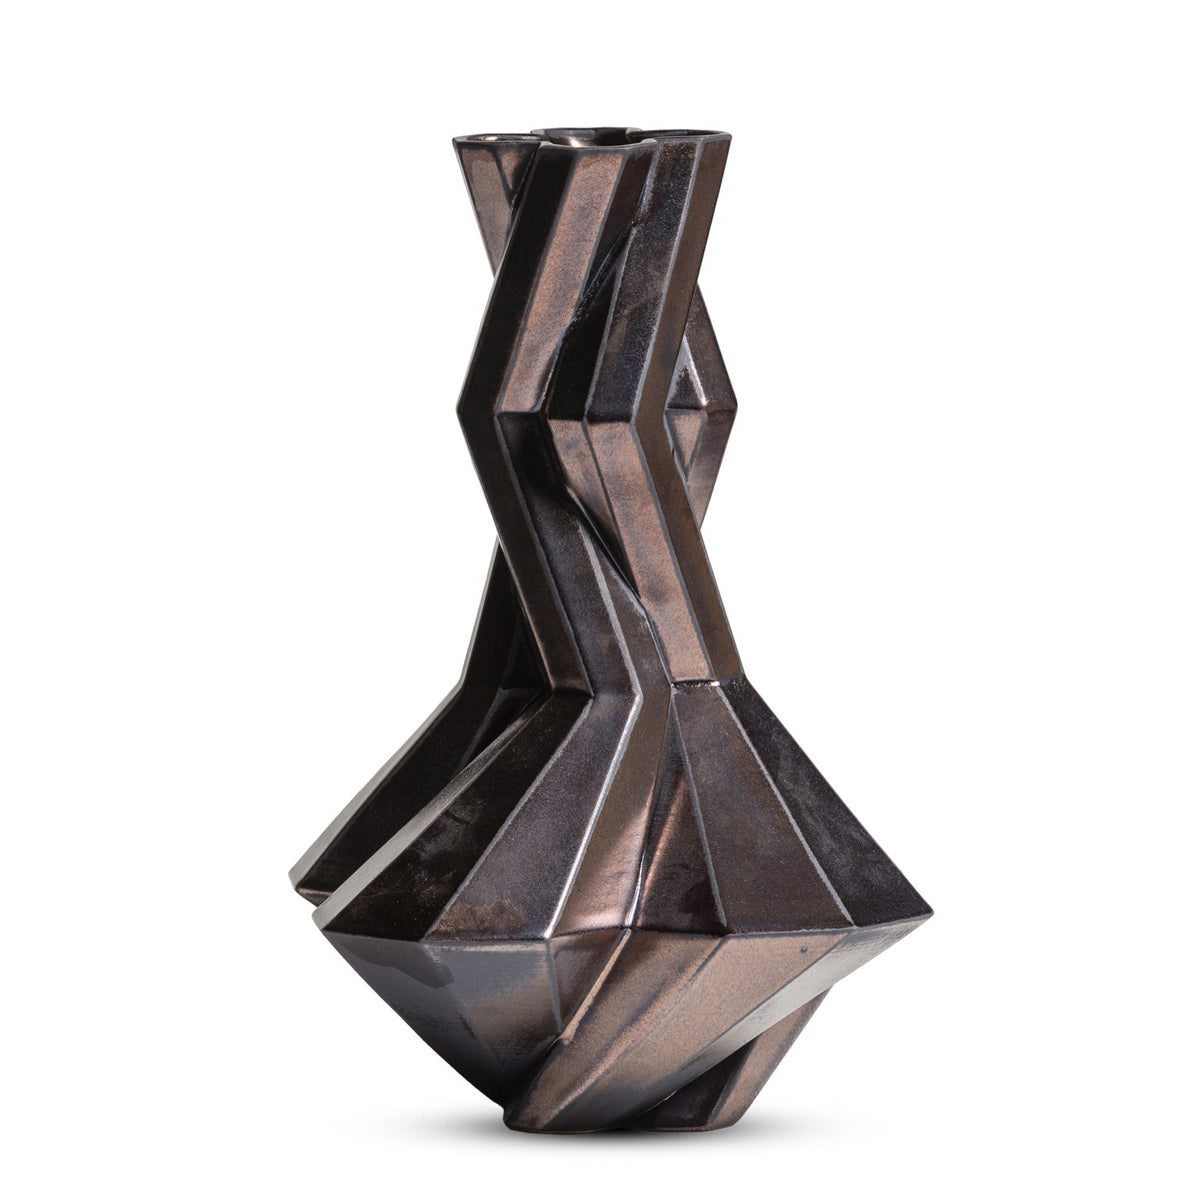 FORTRESS CUPOLA VASE - BRONZE